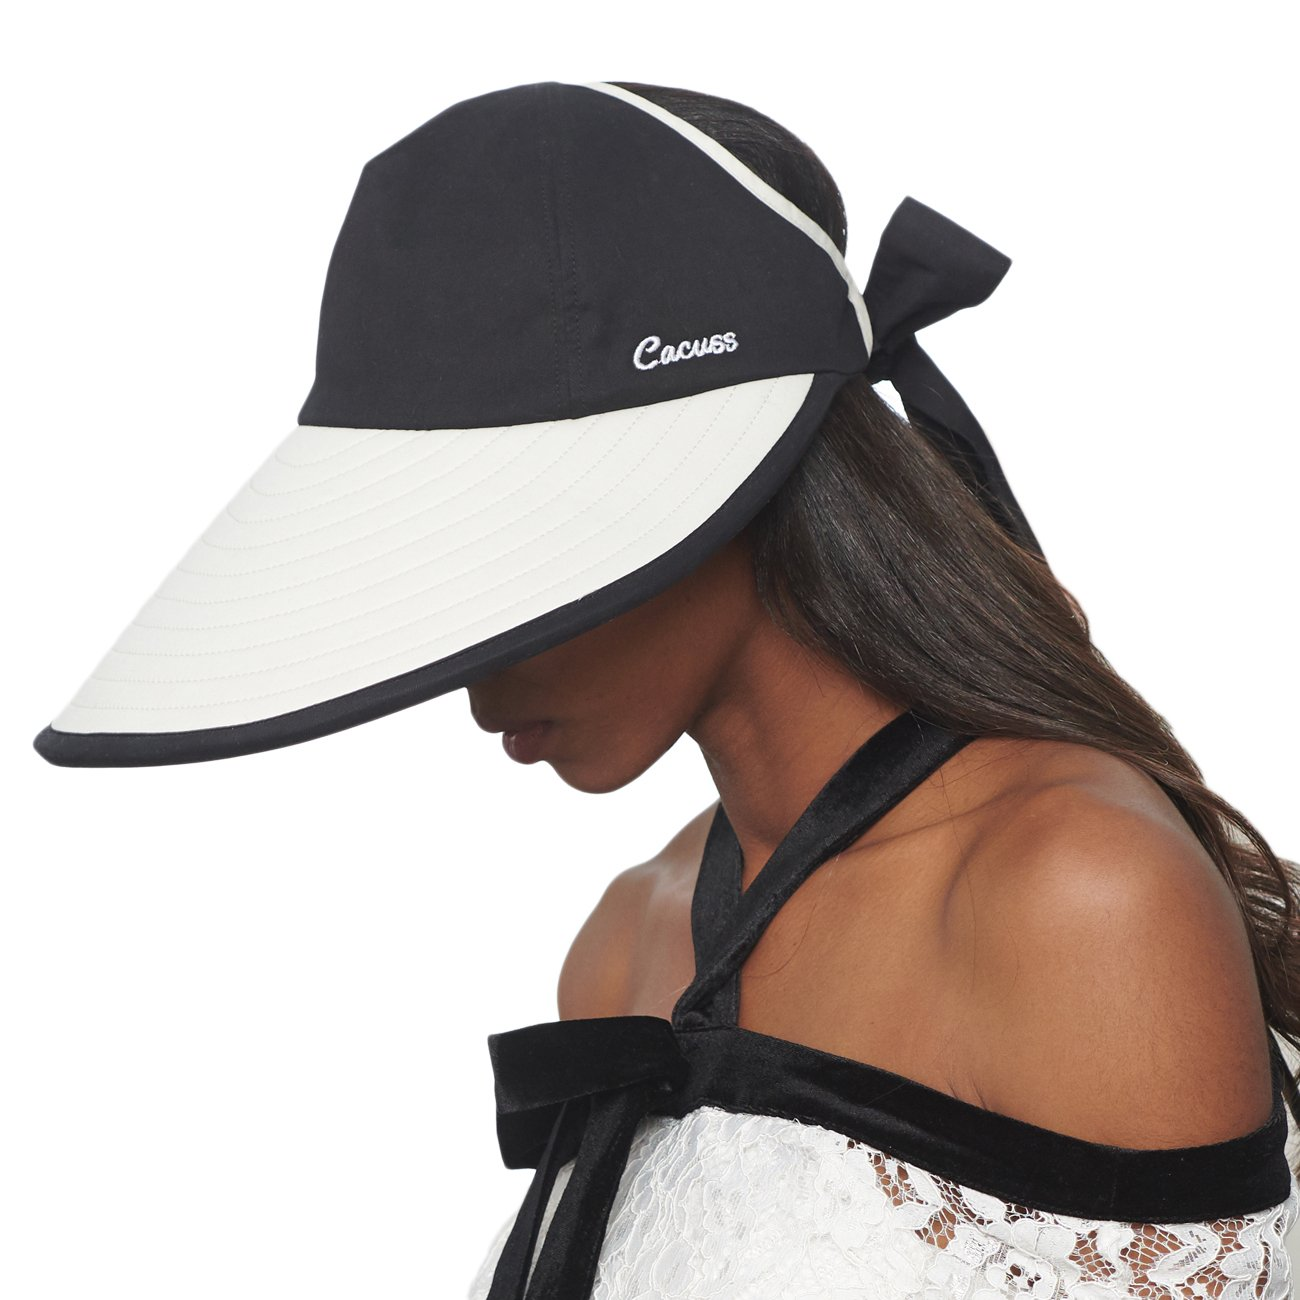 CACUSS Women's Summer Sun Hat Large Brim Visor with Bowknot Adjustable UPF 50+ C0215White